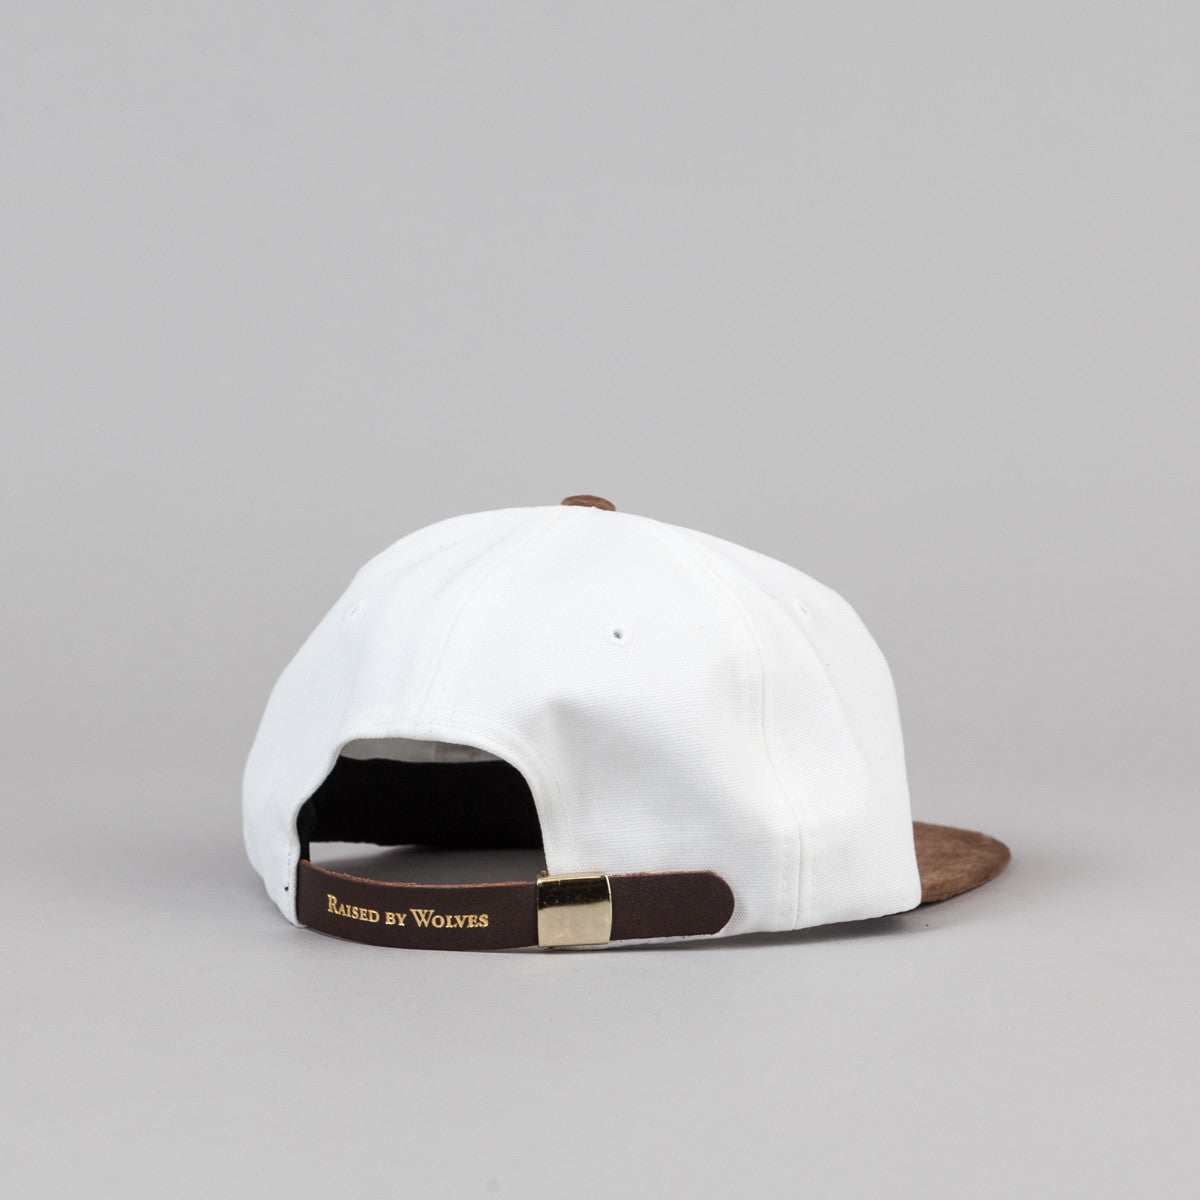 Raised By Wolves Geowulf Polo Cap - Mocha / White